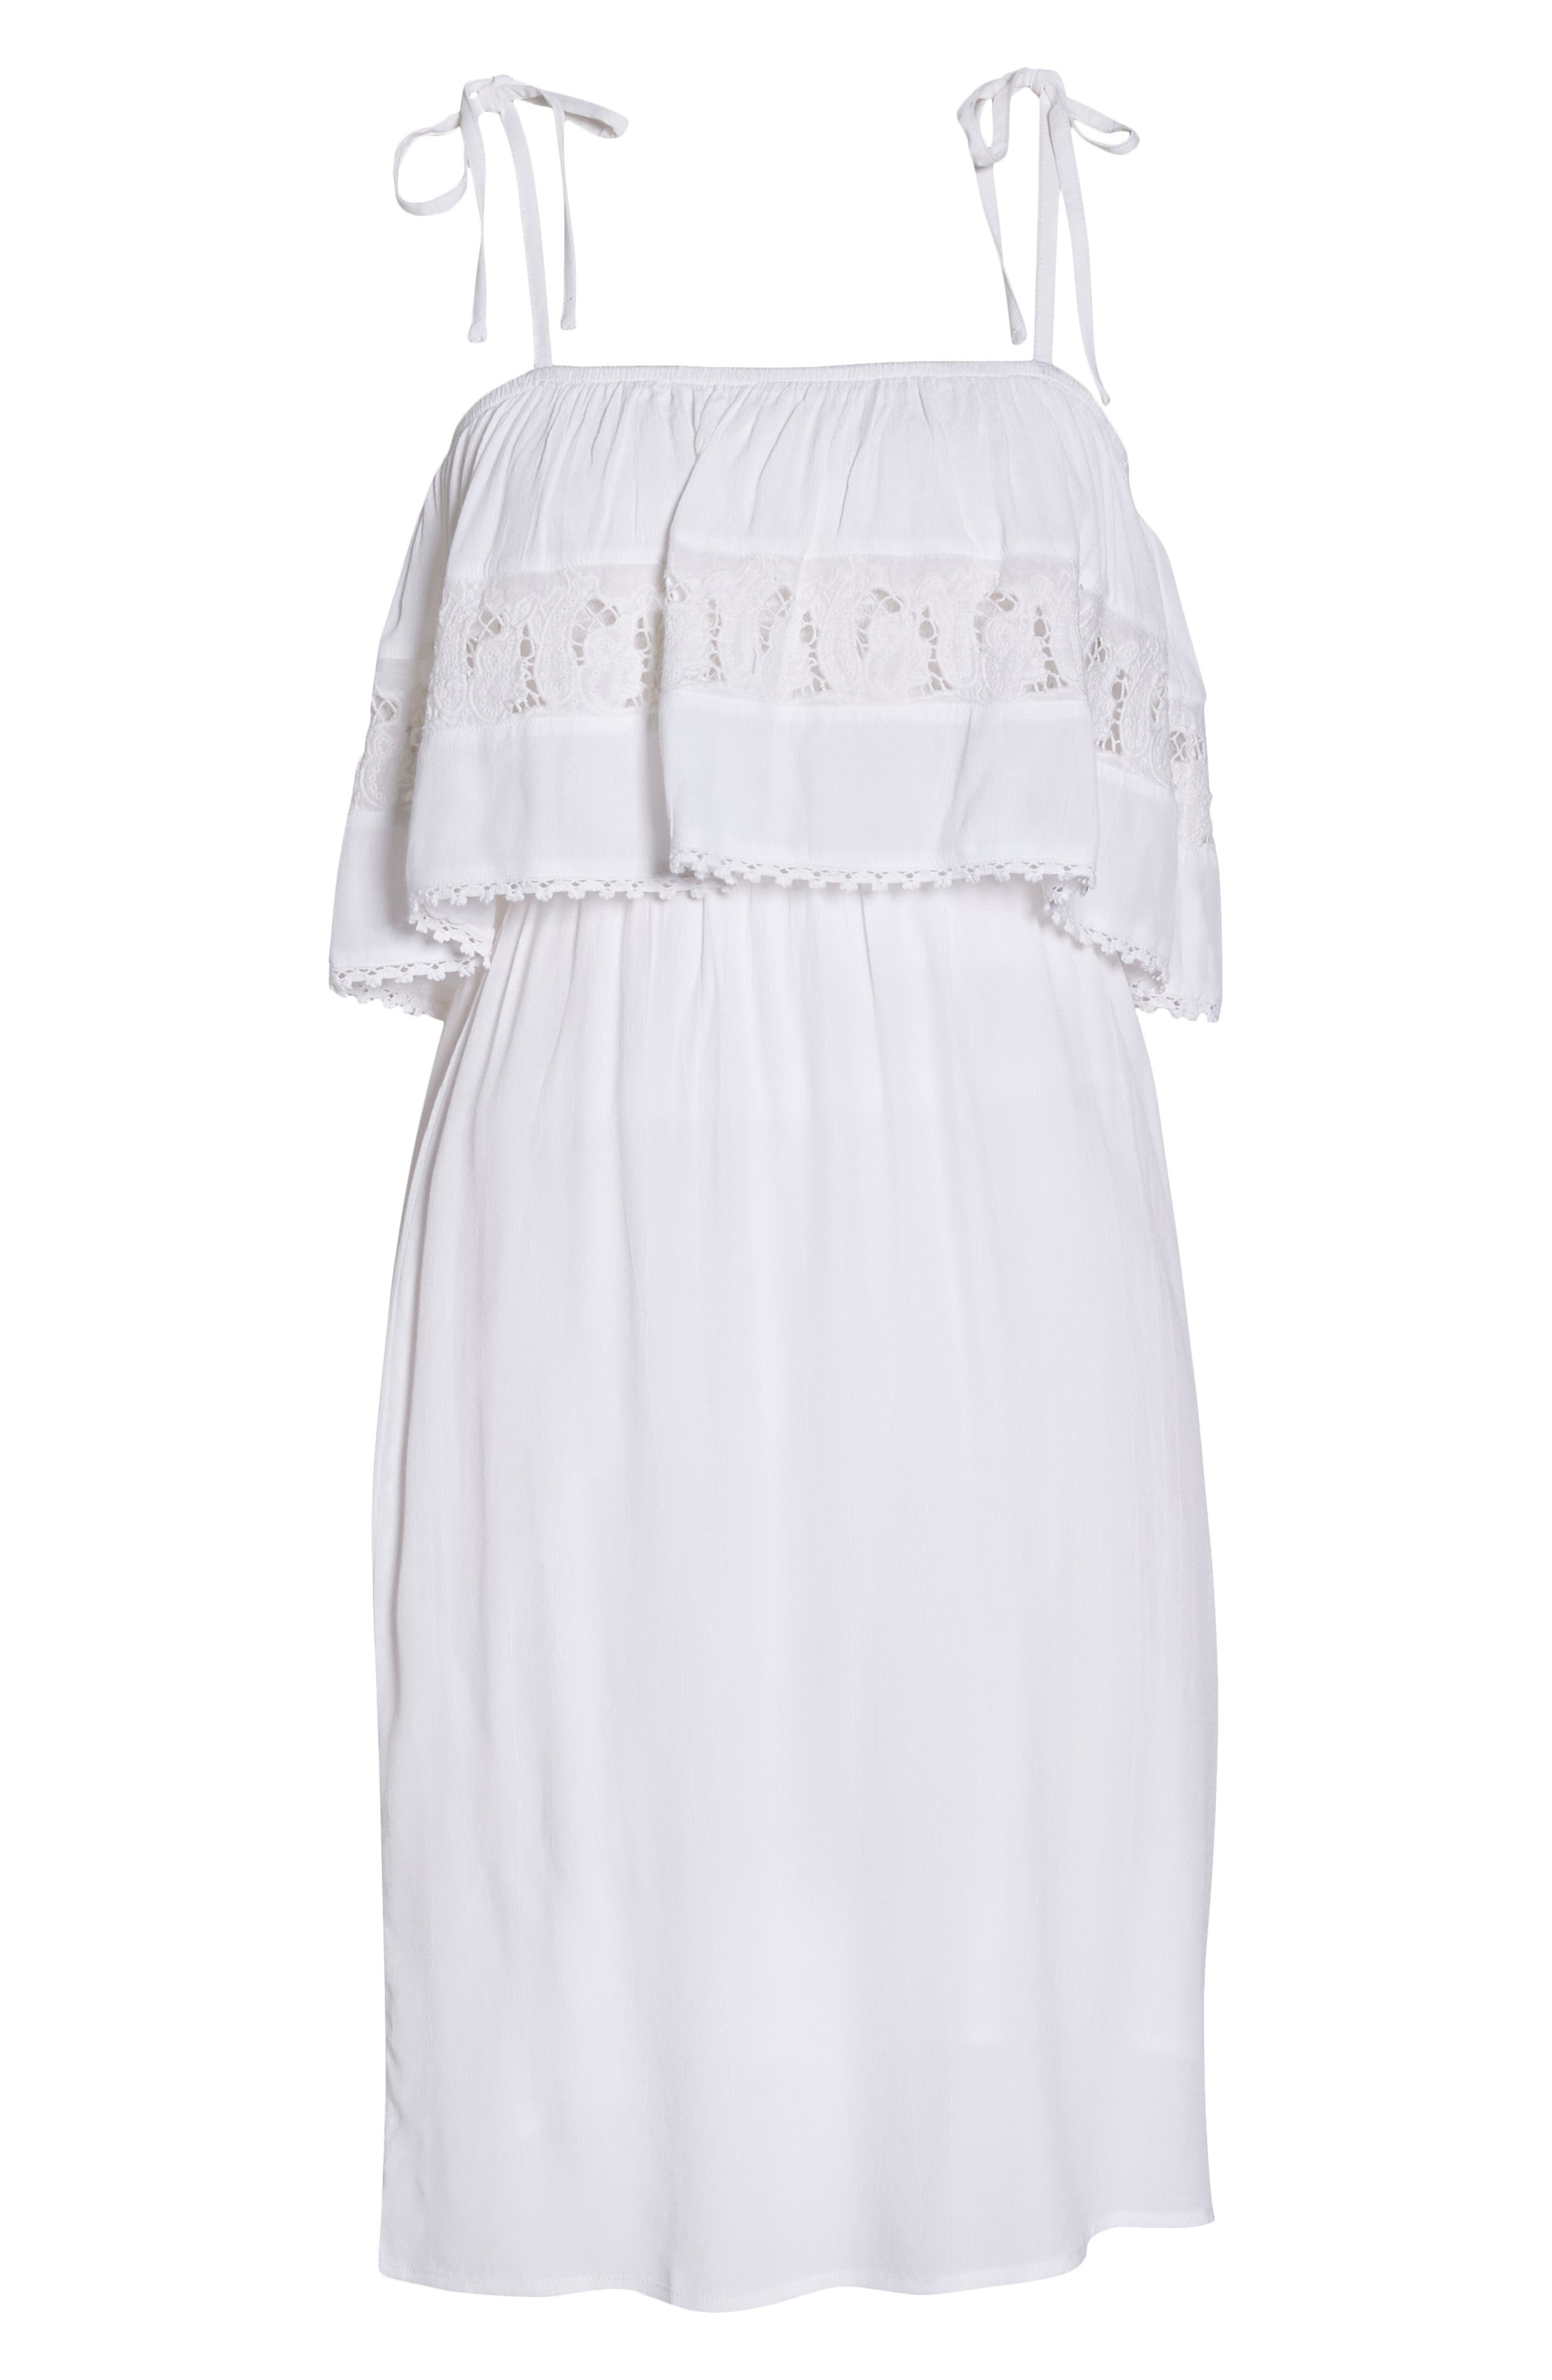 Jaclyn Cover-Up Dress,                             Alternate thumbnail 6, color,                             White